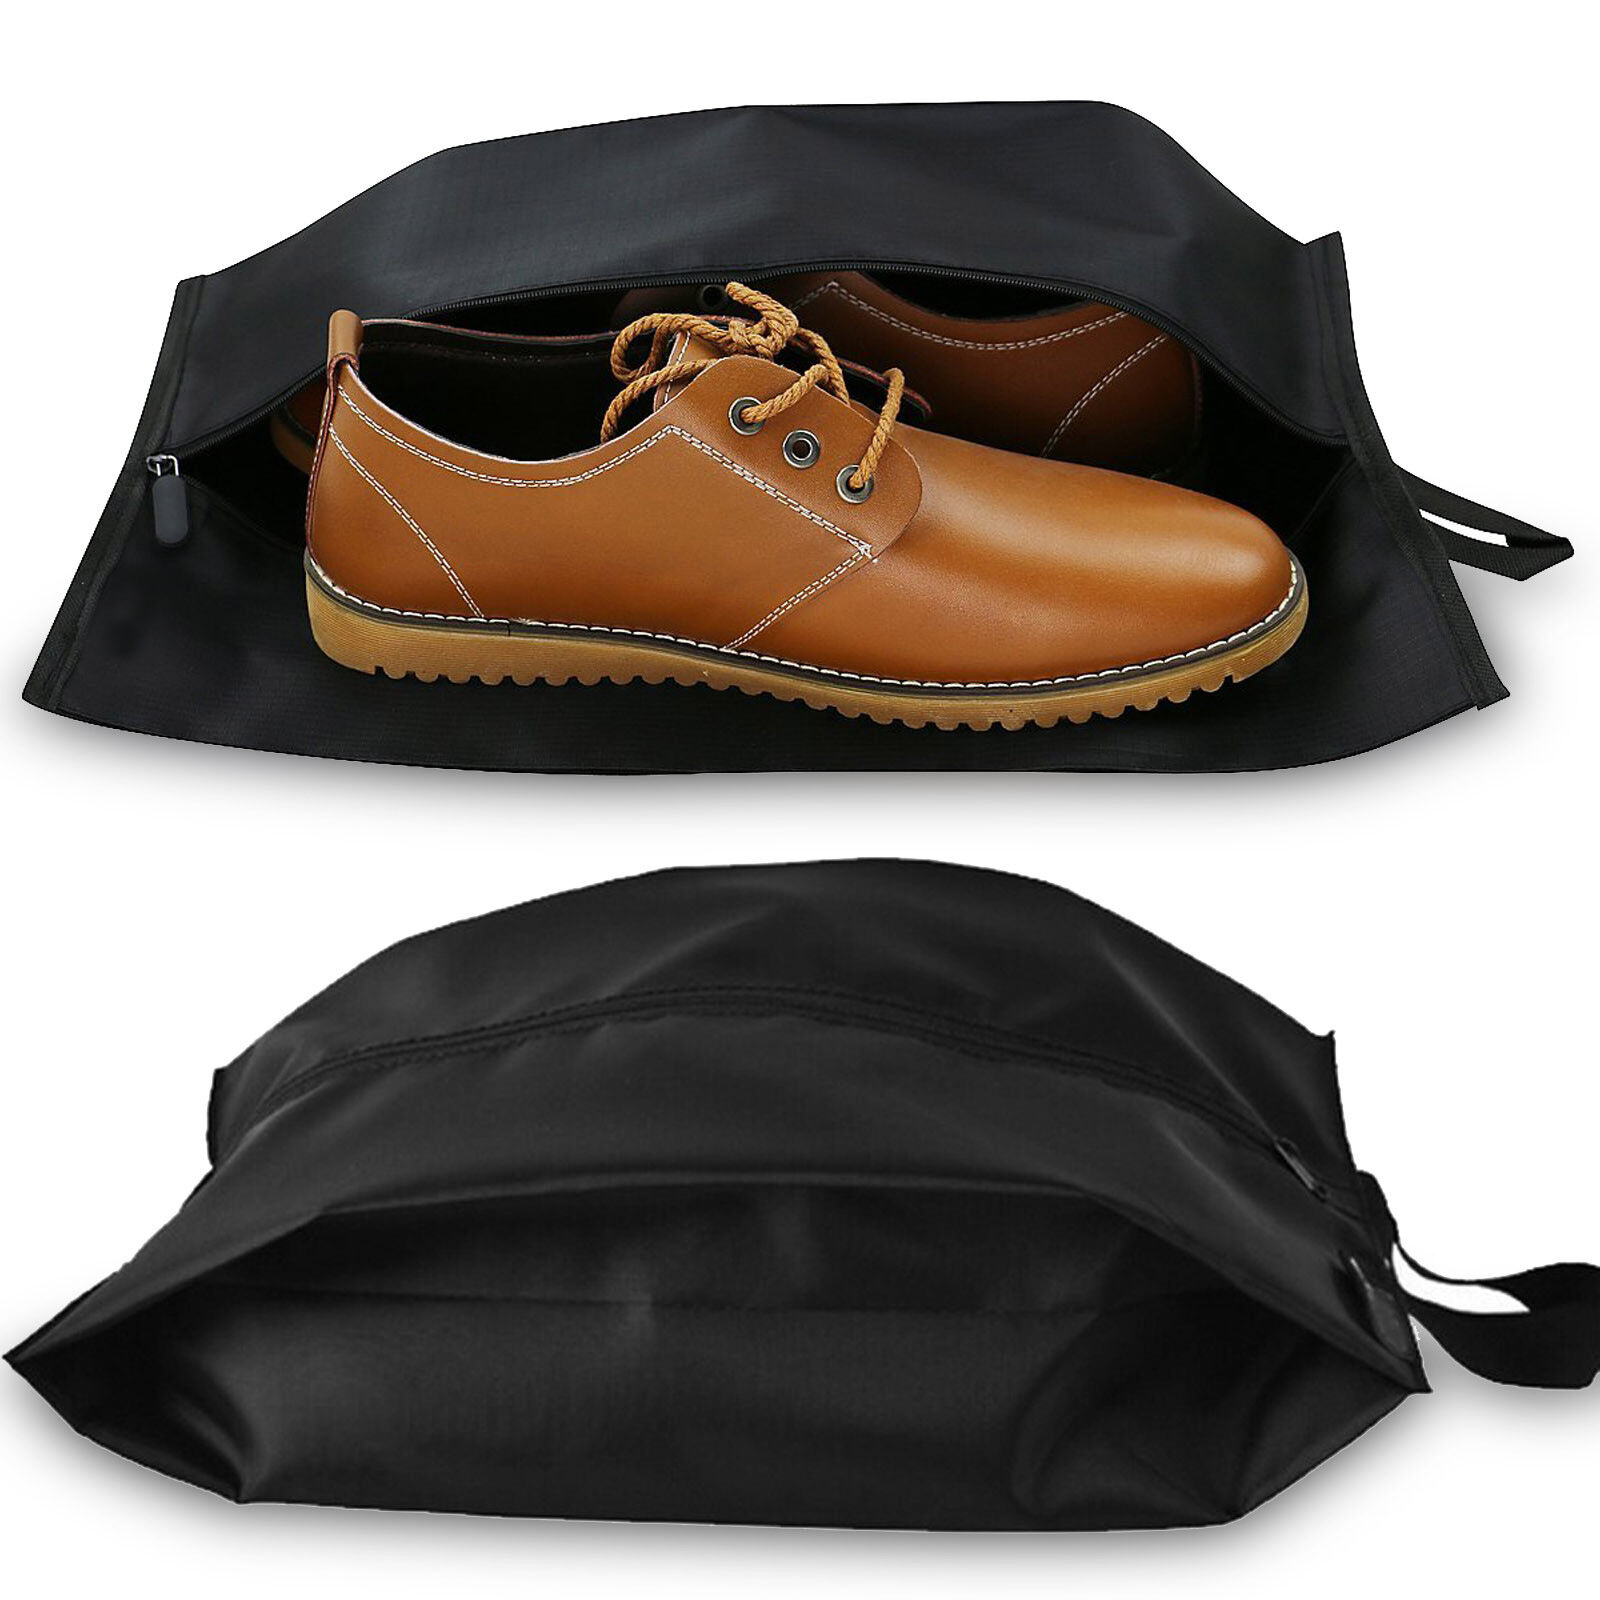 Unisex Quality Nylon Shoe Tote Bags with Heavy Duty Zipper F